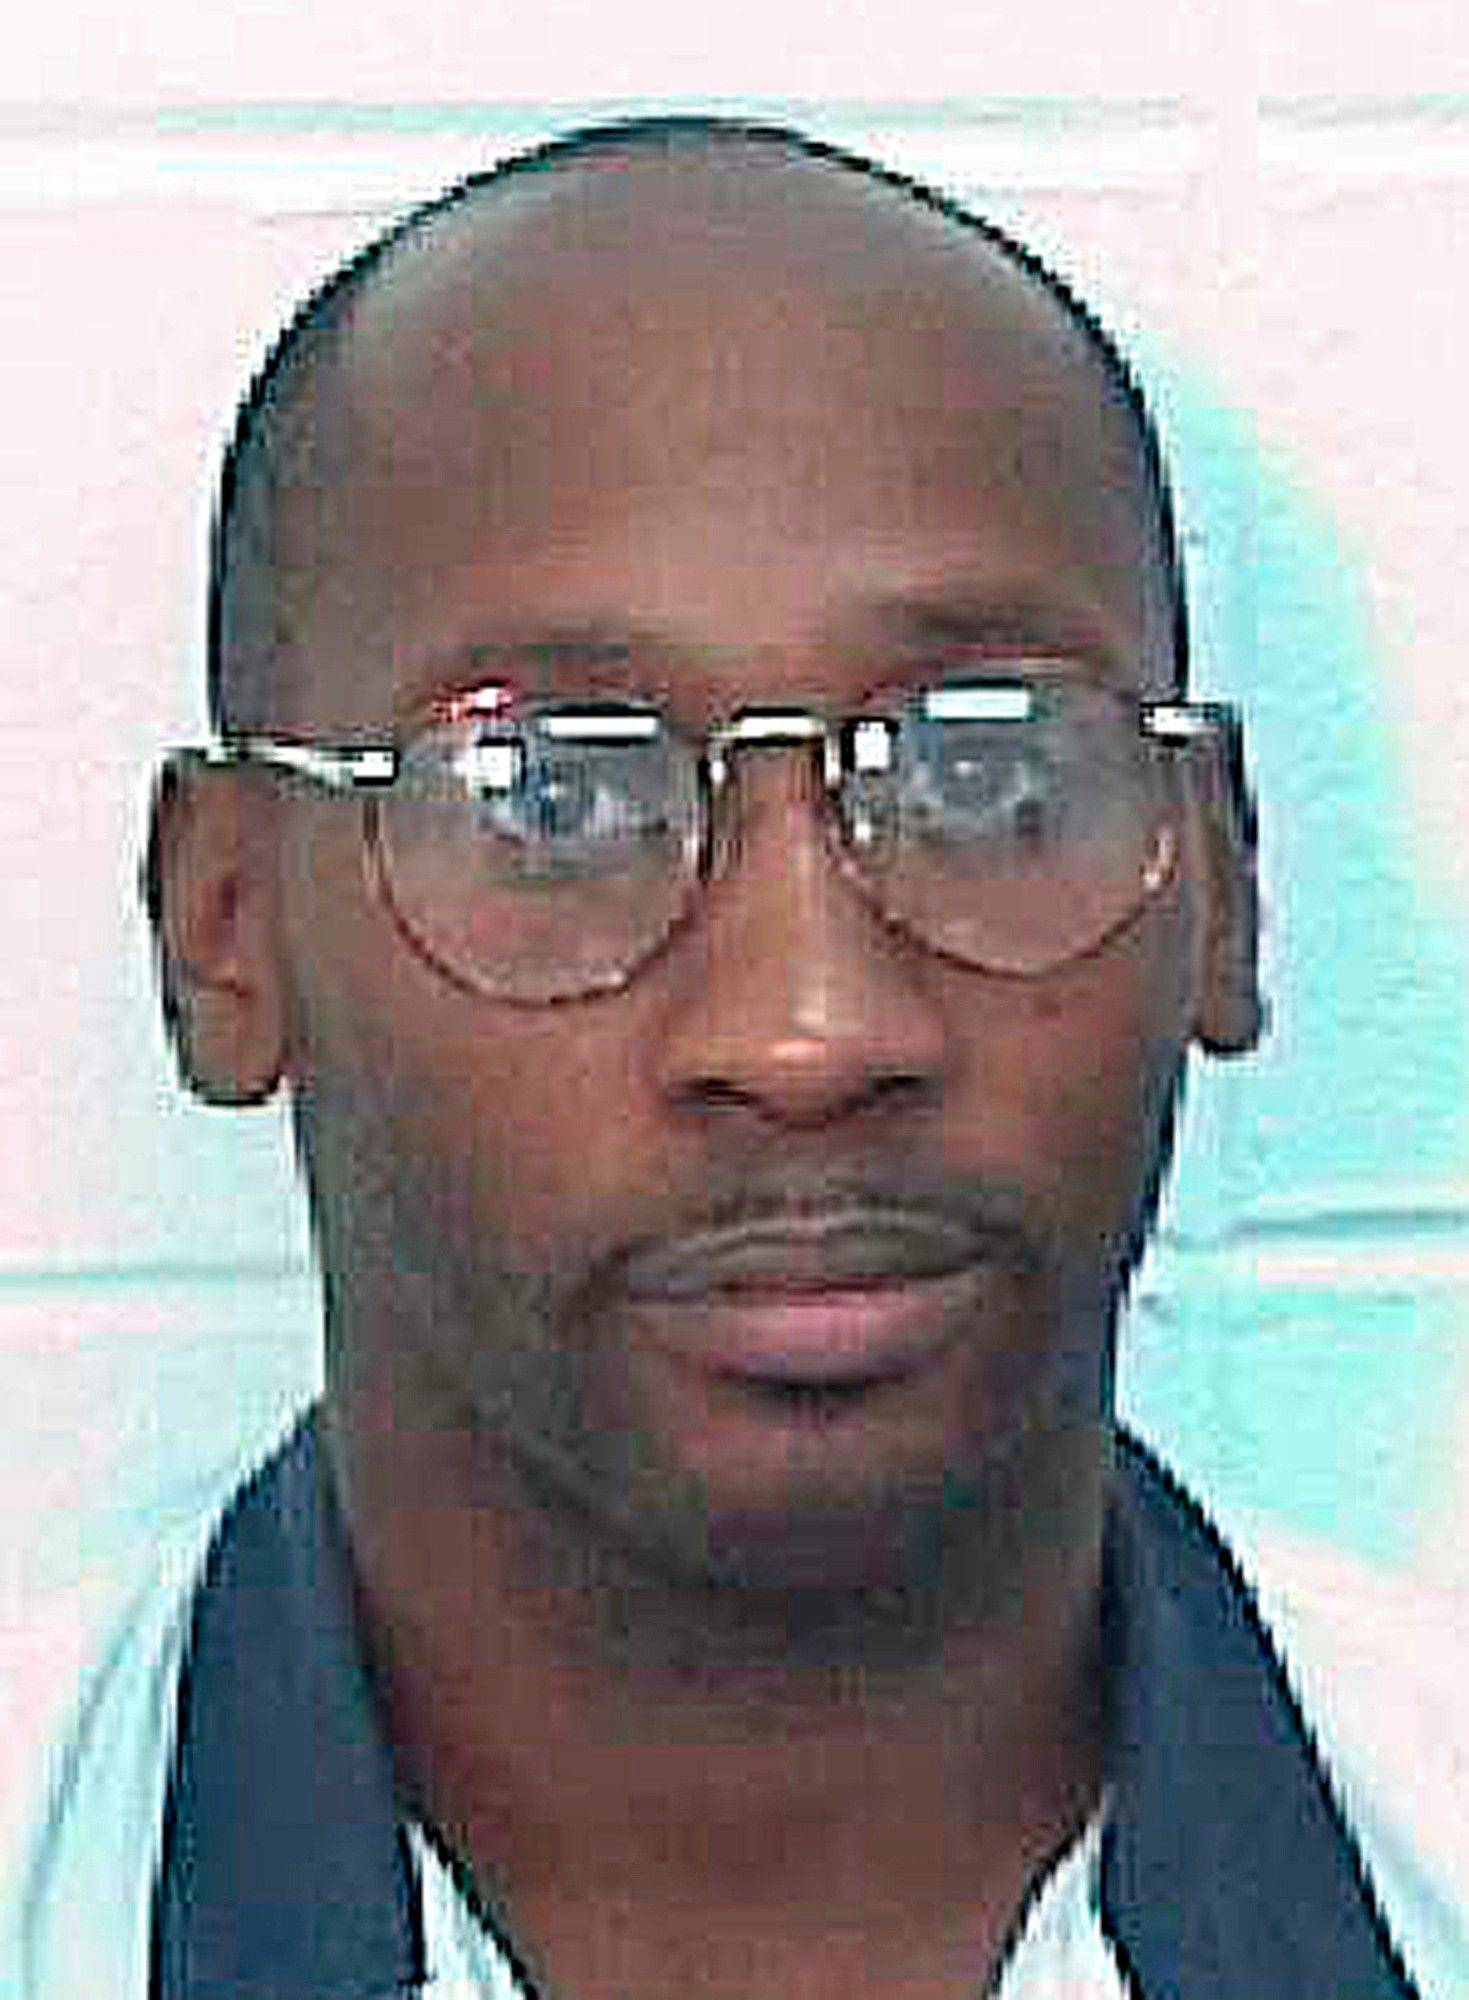 Georgia�s pardons board on rejected clemency for death row inmate Troy Davis despite high-profile support for his claim that he was wrongly convicted of killing a police officer in 1989. Davis is set to die on Wednesday, Sept. 21. It is the fourth time in four years his execution has been scheduled by Georgia officials.